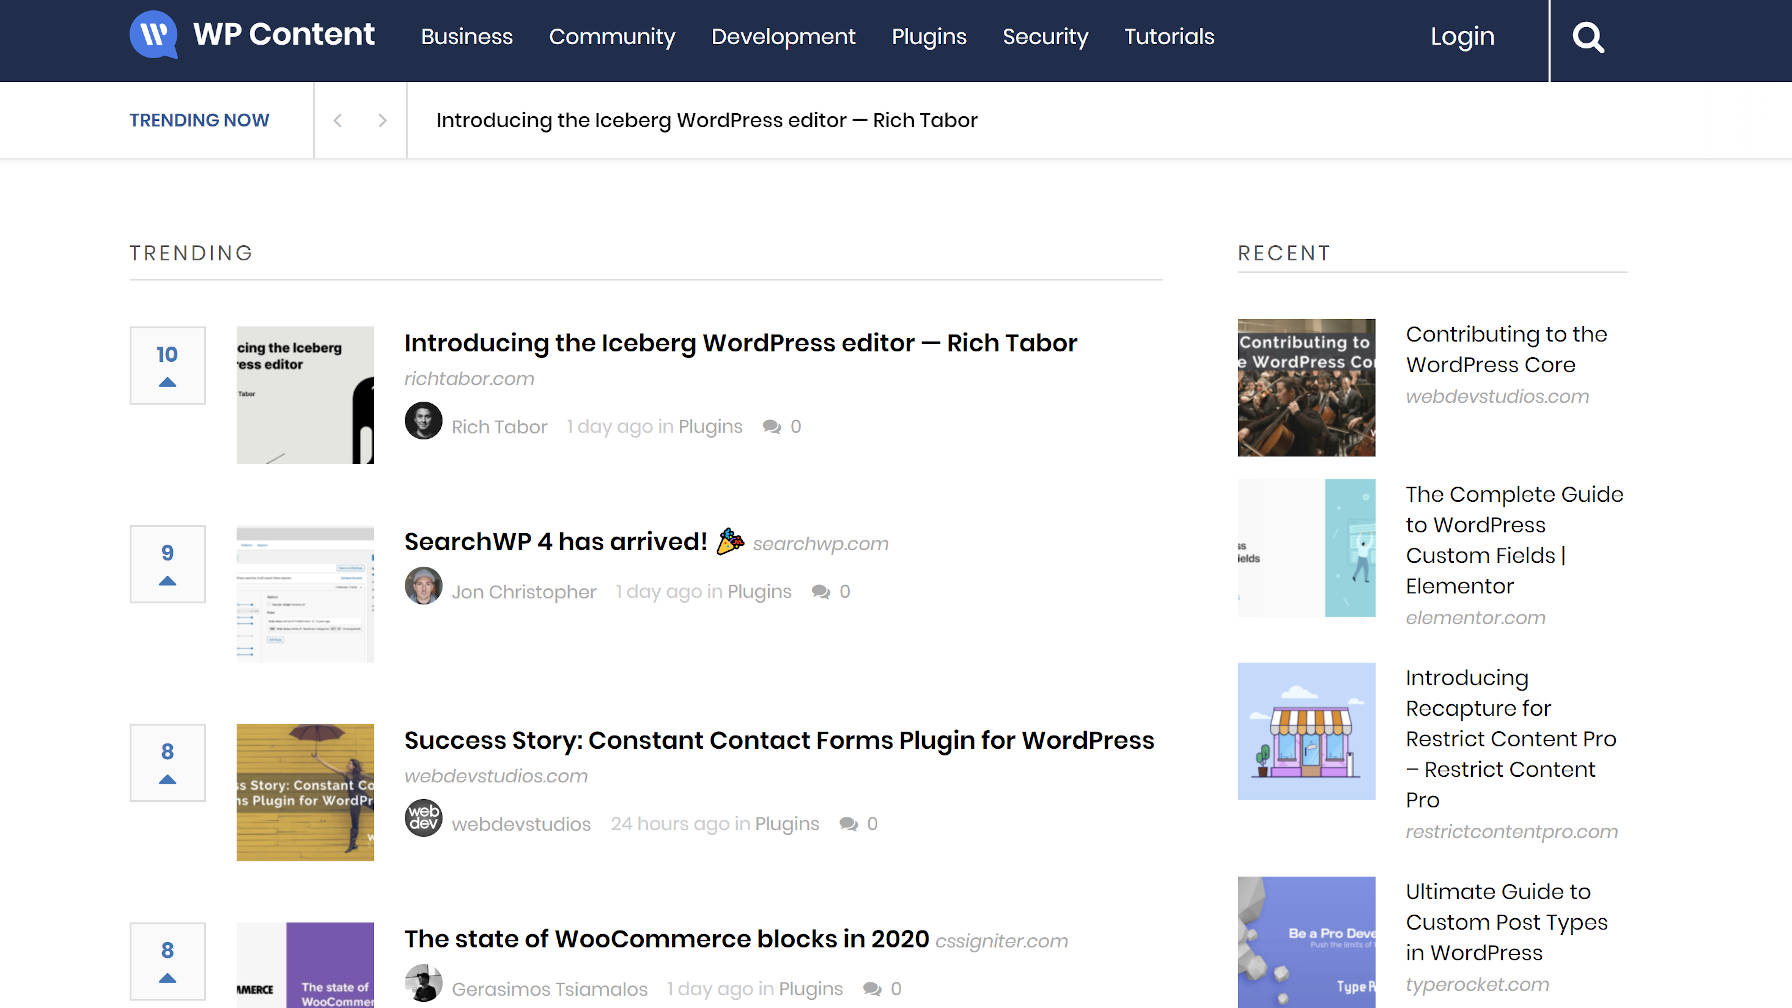 Goodbye, ManageWP.org; Whats up, WP Content material – WordPress Tavern